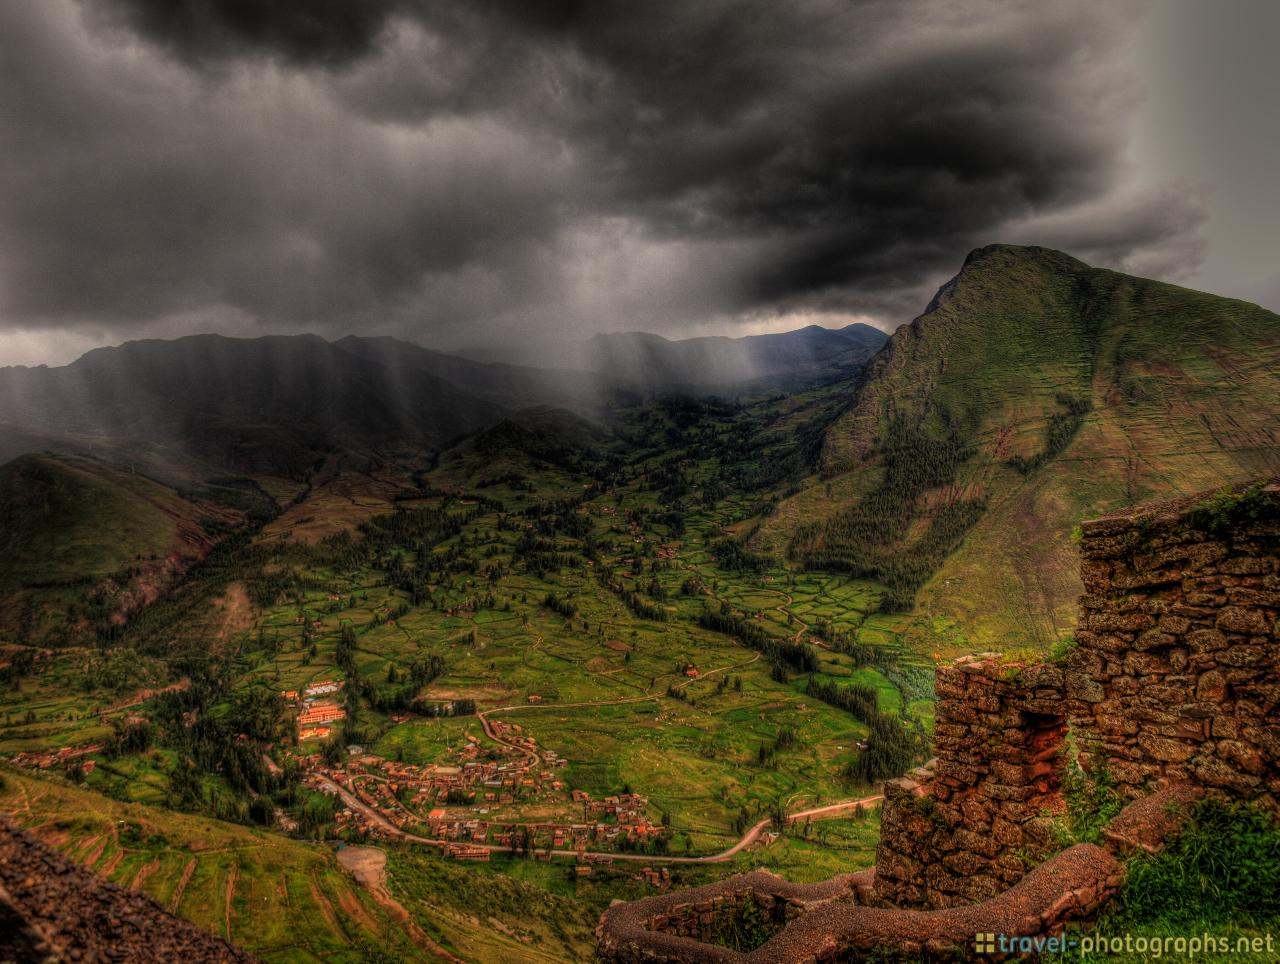 sacred-valley-of-the-incas-from-pisac-ruins-hdr